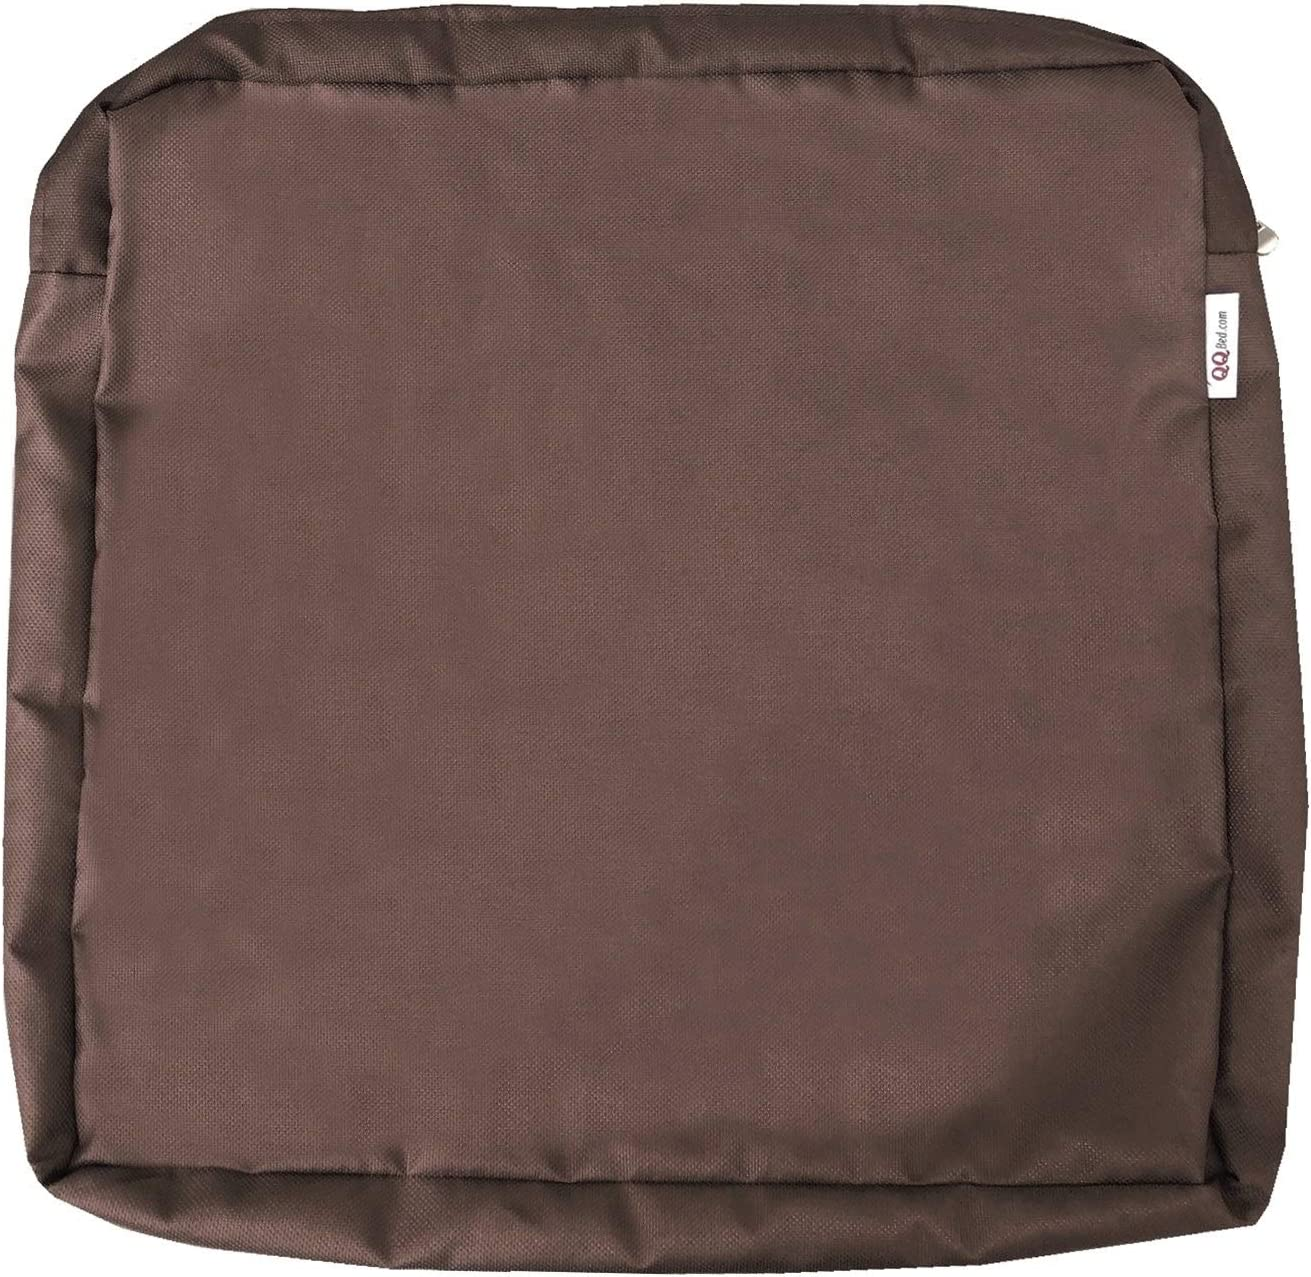 """QQbed 4 Pack Outdoor Patio Chair Washable Cushion Pillow Seat Covers 20""""X18""""X4"""" Size - Replacement Covers Only (20""""X18""""X4"""" 4 Pack, Brown)"""